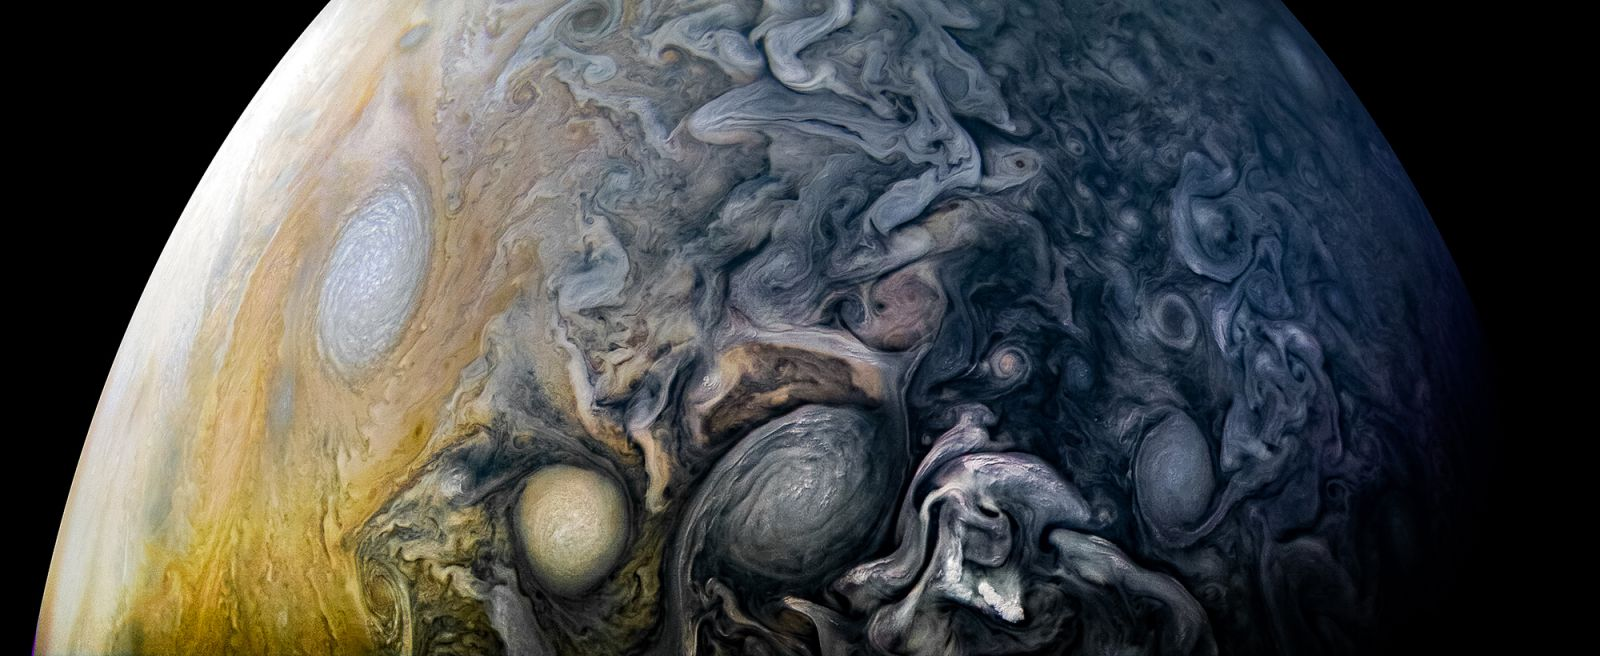 Jupiter's cloud tops as seen by Juno during its 12th perijove on April 1, 2018. Photo Credit: Kevin Gill / NASA / JPL-Caltech / SwRI / MSSS